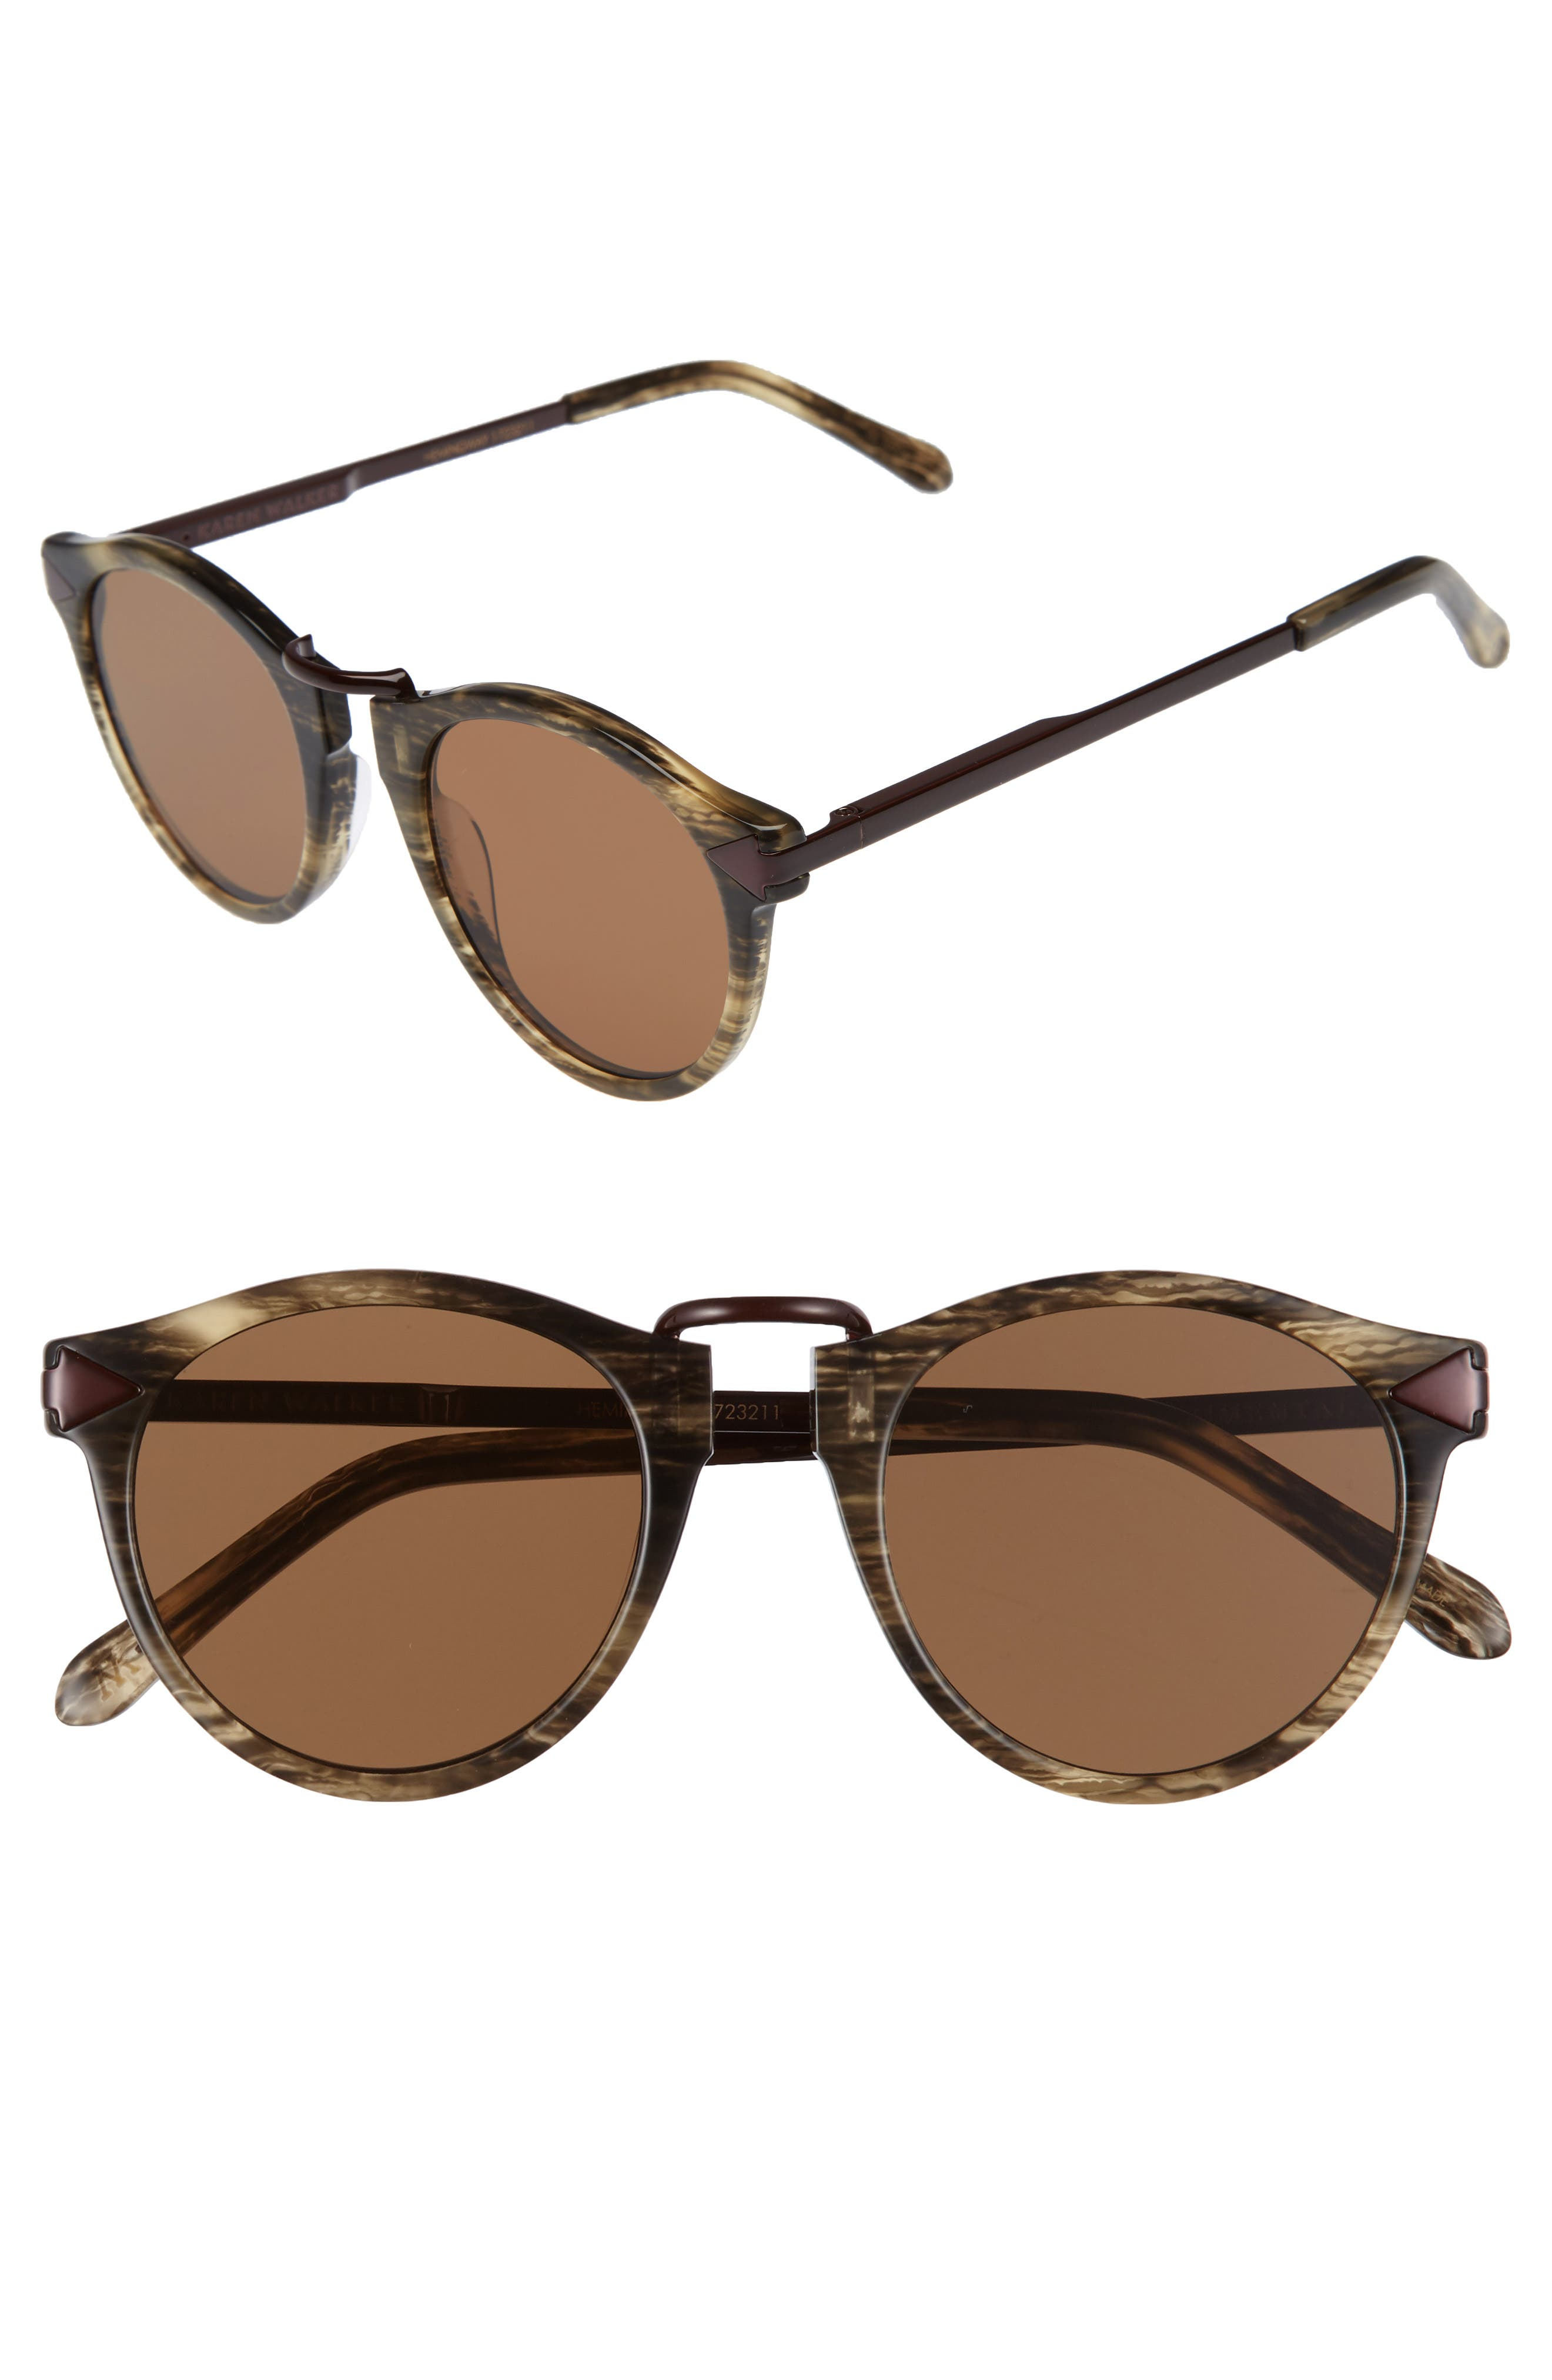 Karen Walker x Monumental 49mm Polarized Sunglasses